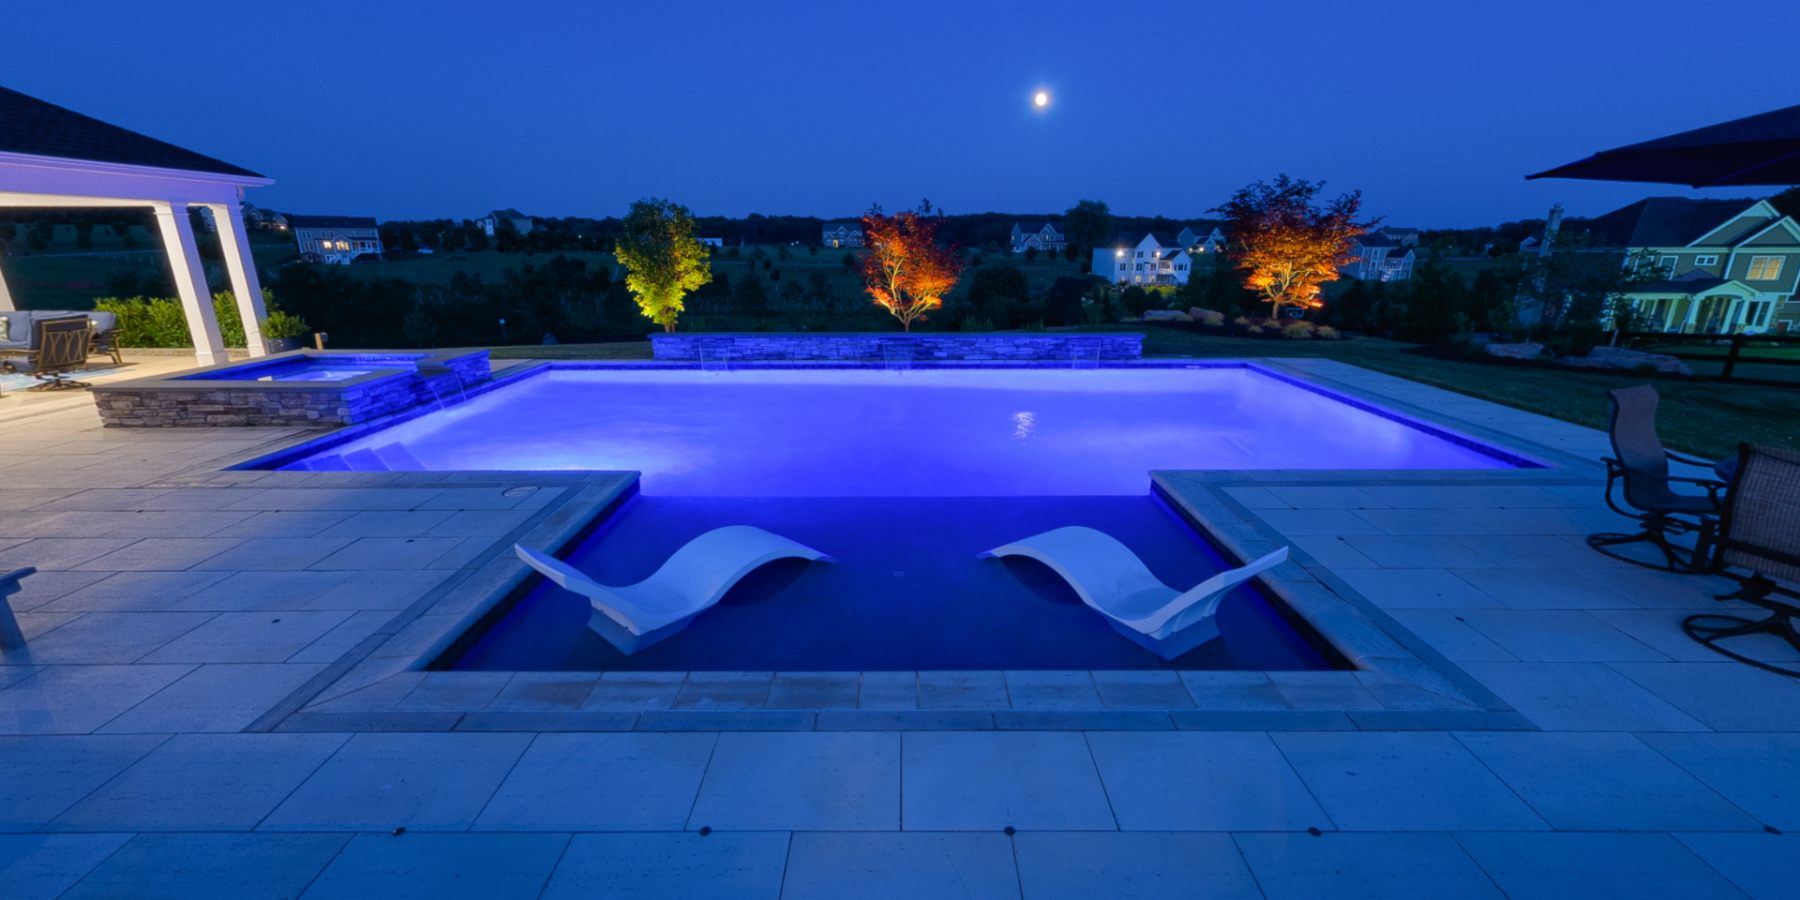 Pool-Evening-690A02193a